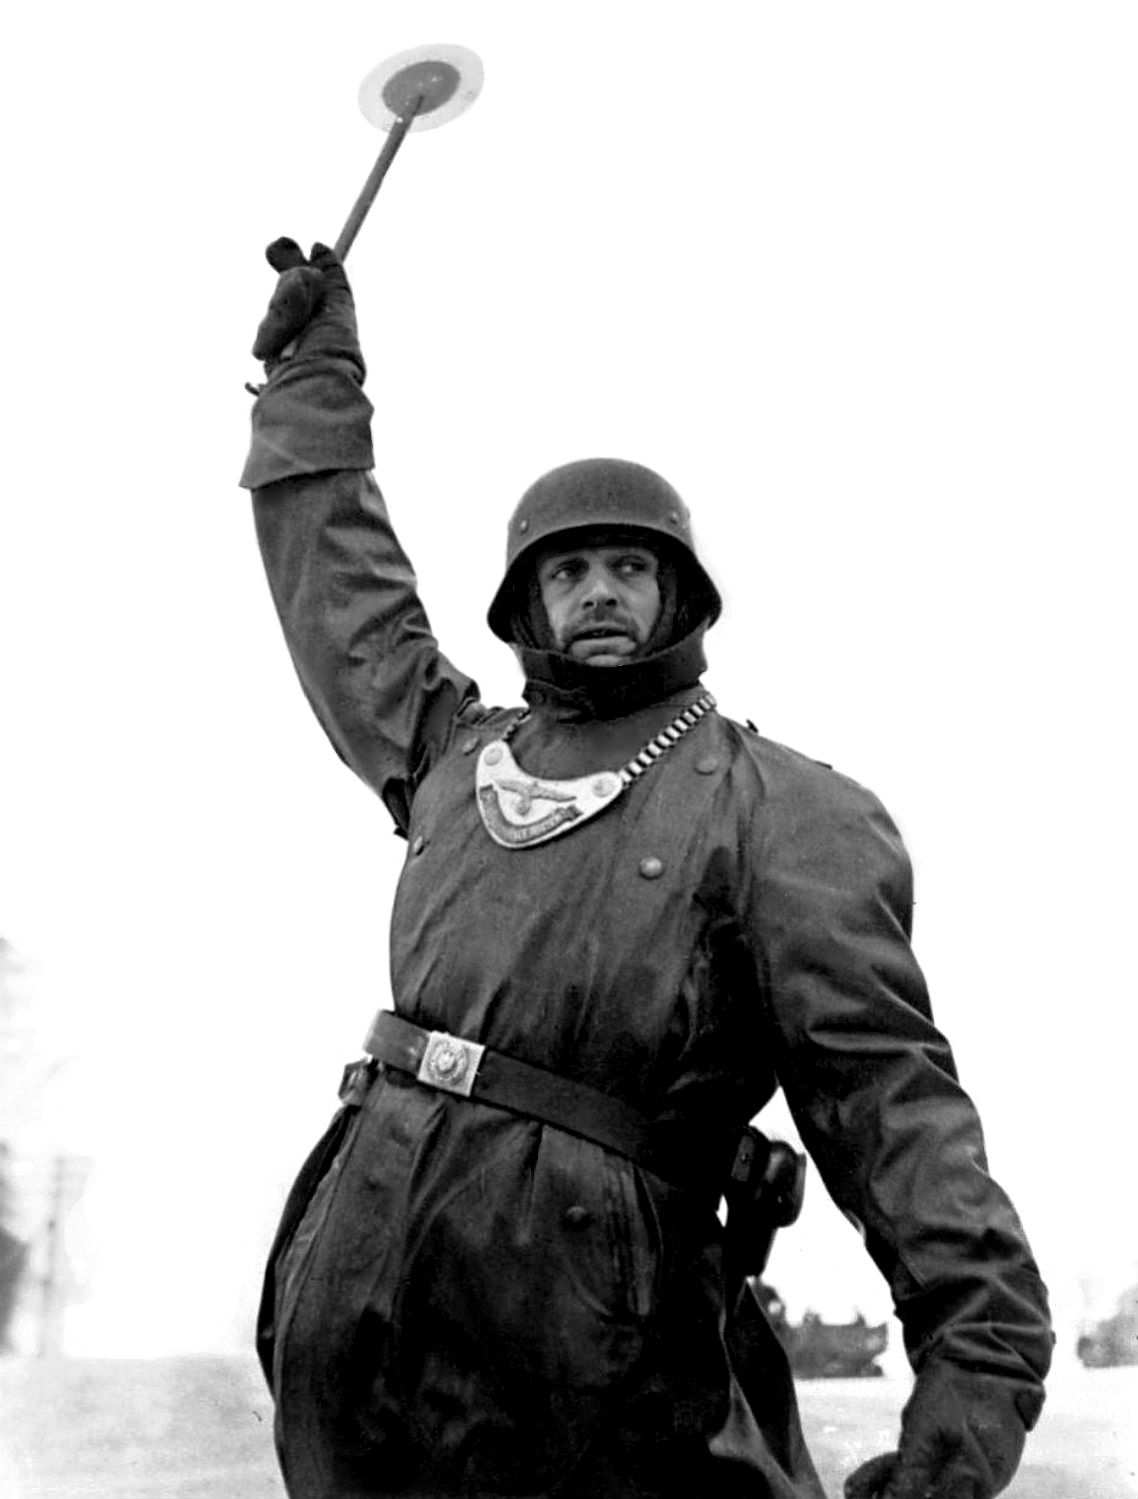 A German Wehrmacht soldier of the Feldgendarmerie (military police) directs military transport during the Battle of Moscow. Feldgendarmerie units were generally given occupation duties in territories directly under the control of the Wehrmacht. Their duties policing the areas behind the front lines ranged from straightforward traffic and population control to suppression and execution of partisans and the apprehension of enemy stragglers. Moscow Oblast, Russia, Soviet Union. December 1941.